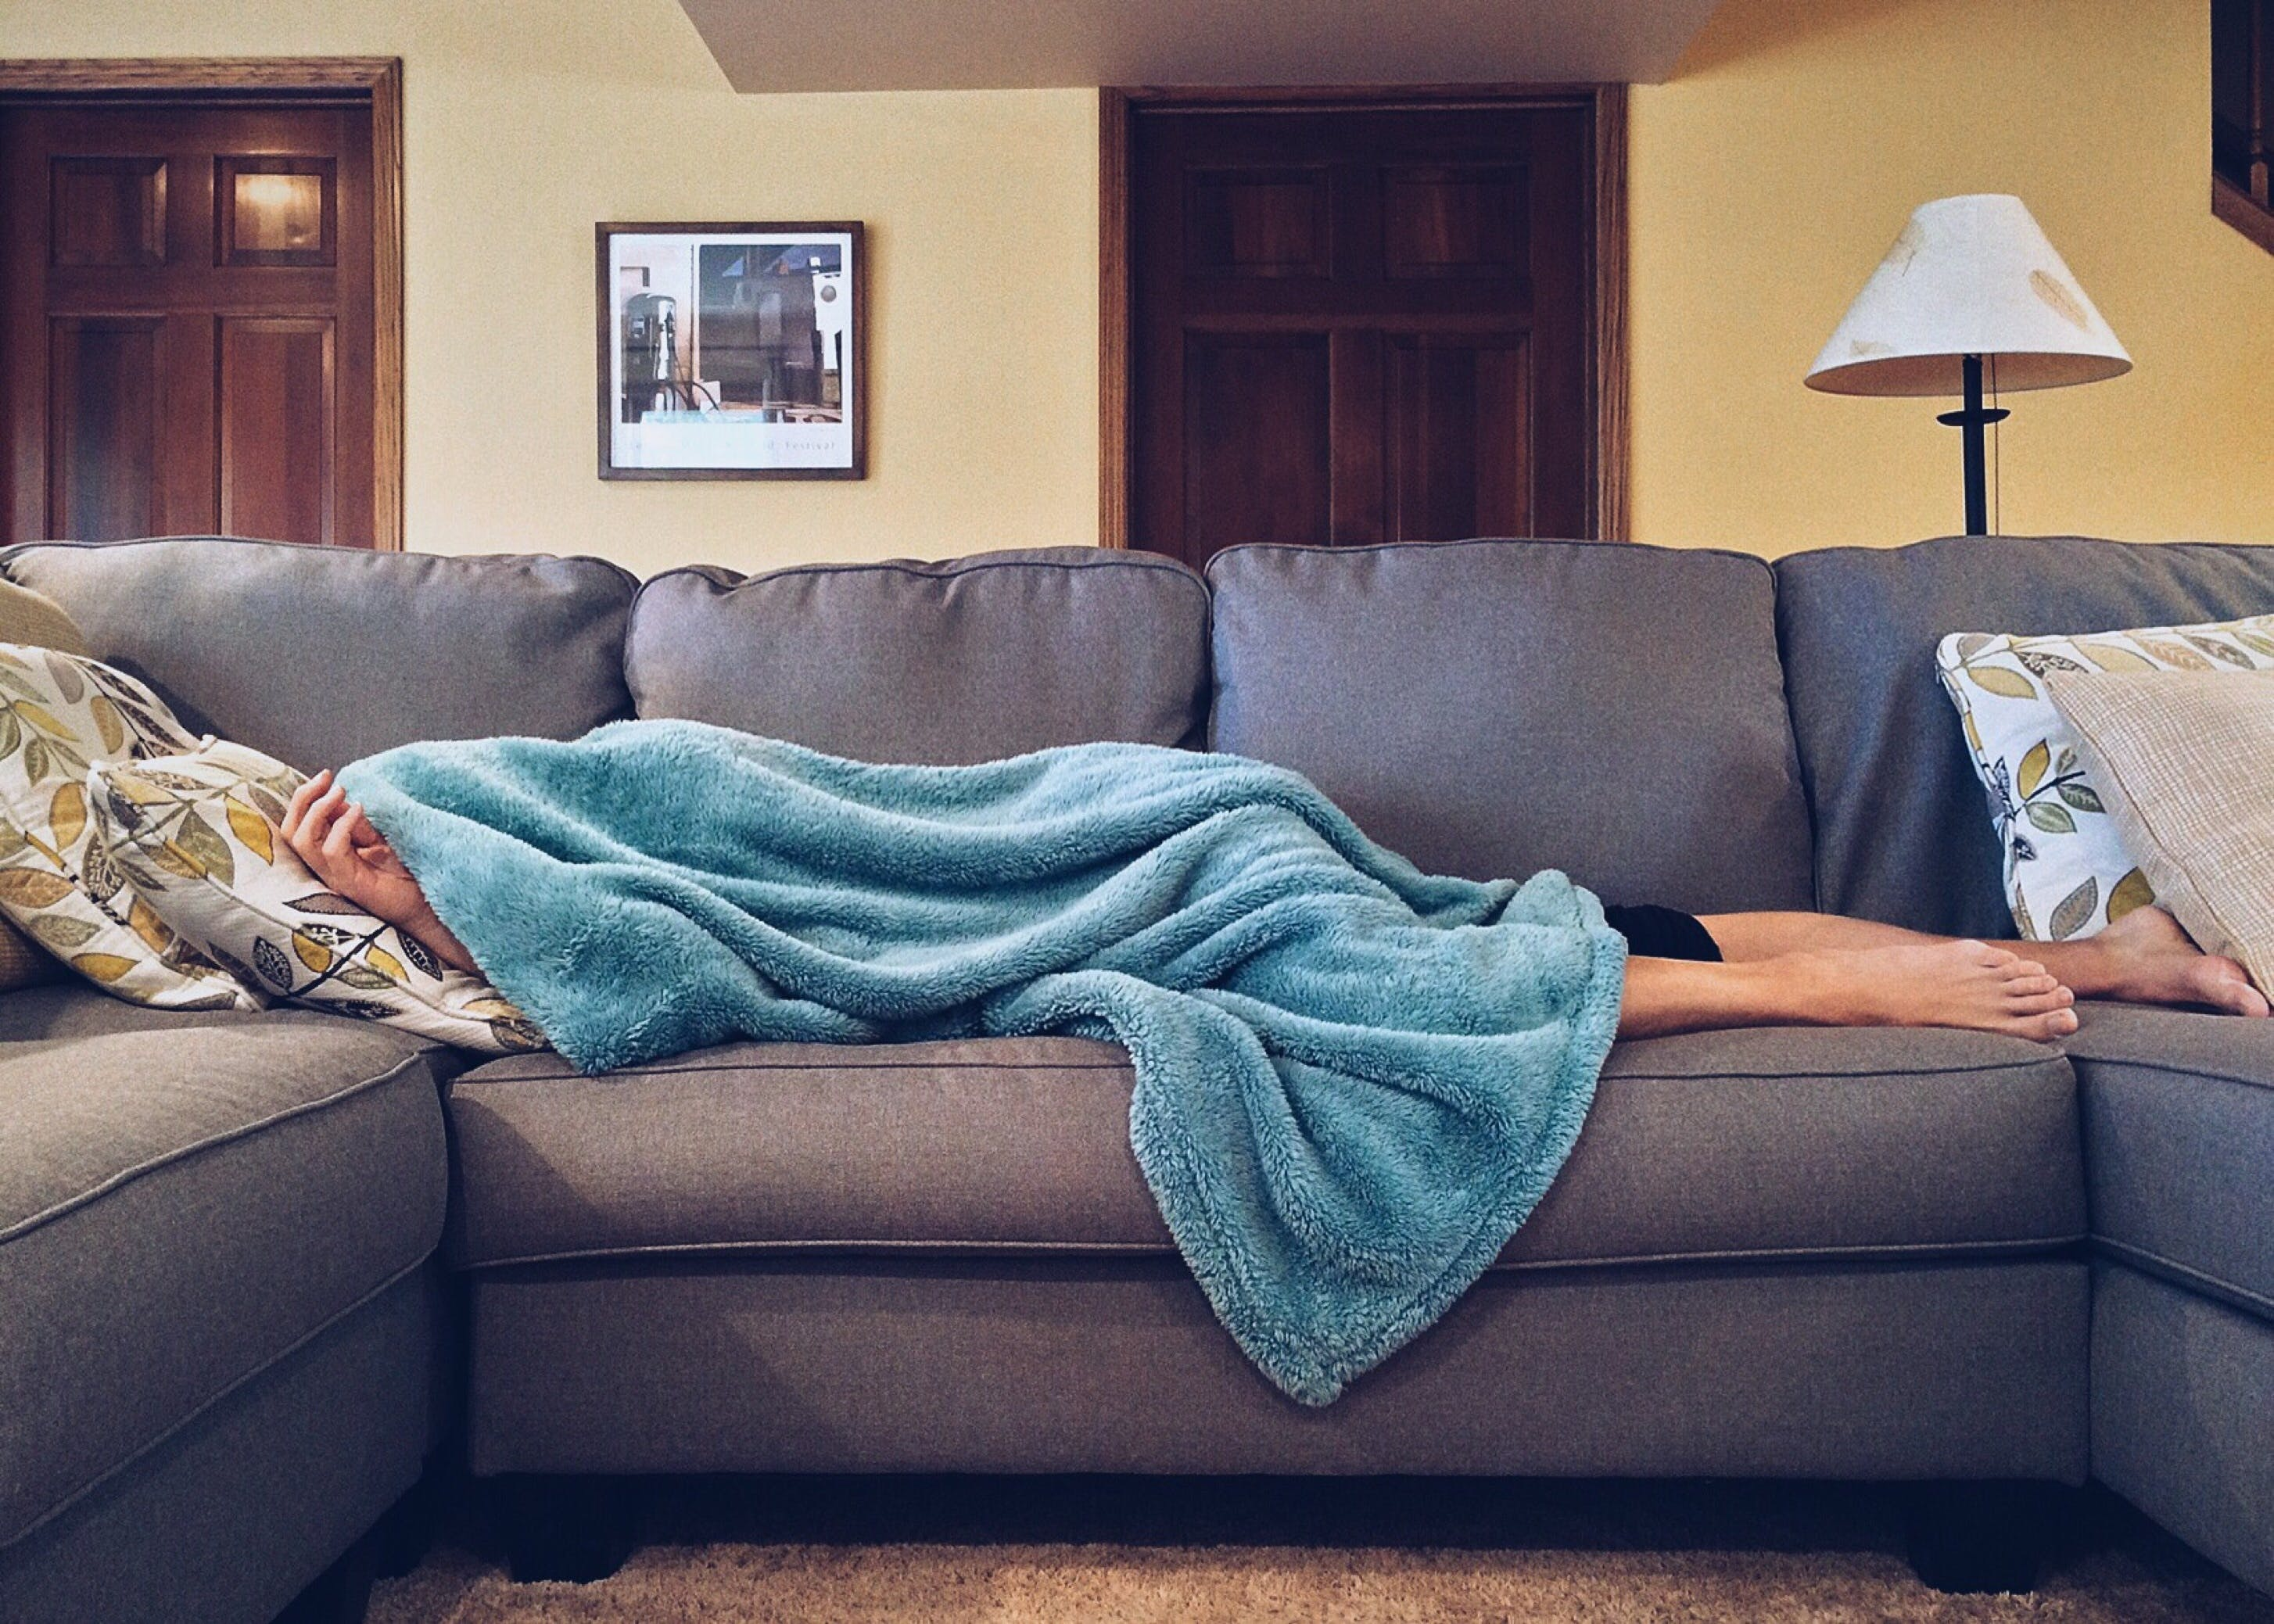 Person Lying on Sofa